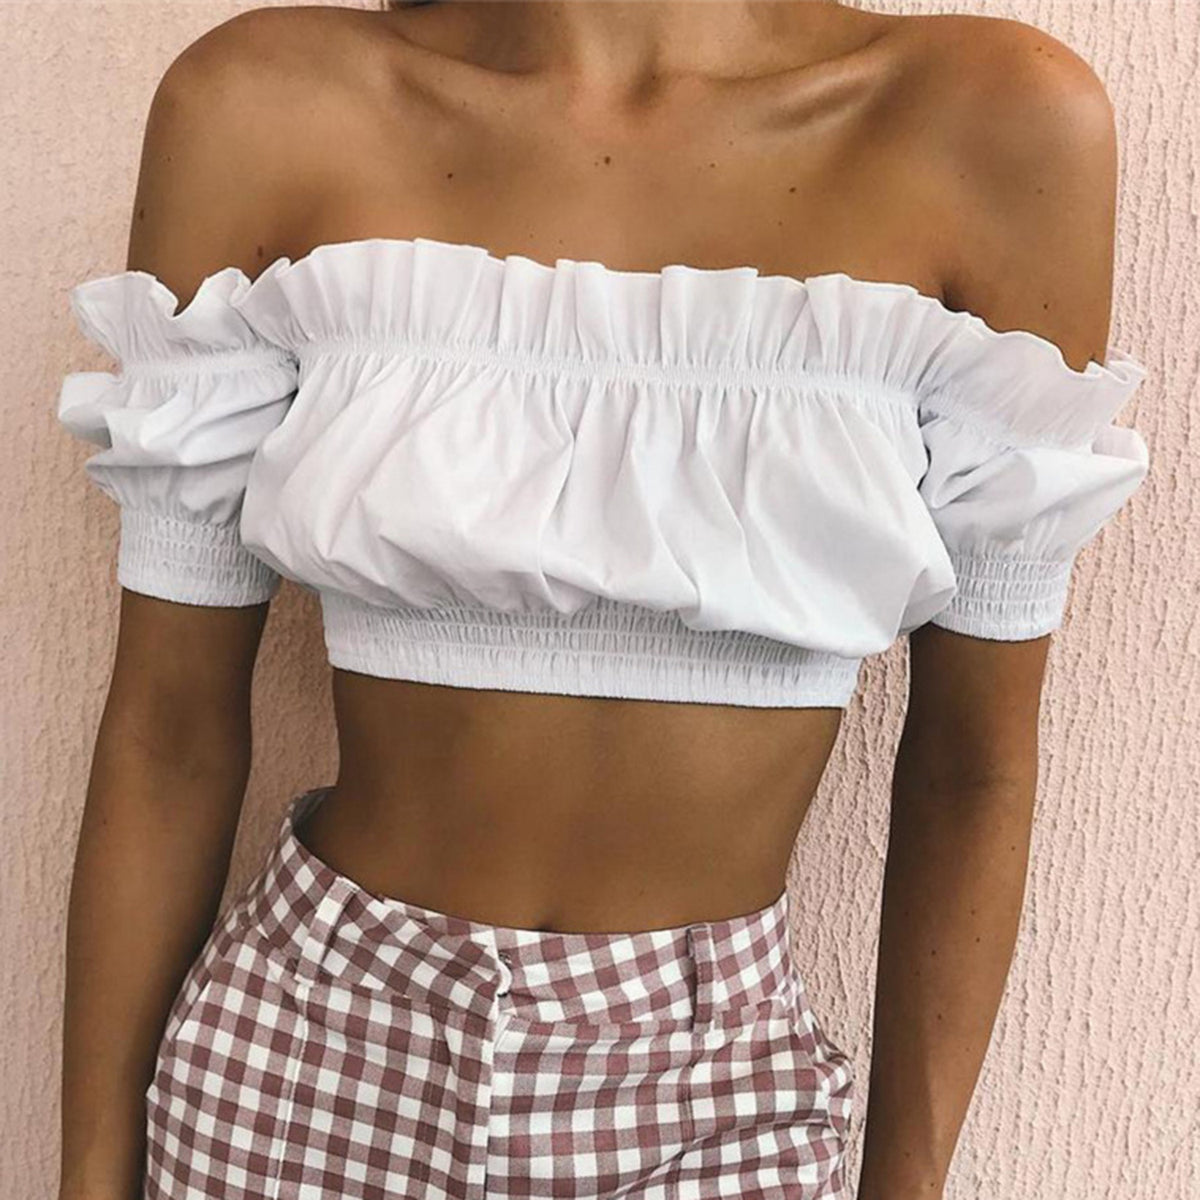 Ruffle Hem Off Shoulder Bandeaux Crop Top - worthtryit.com